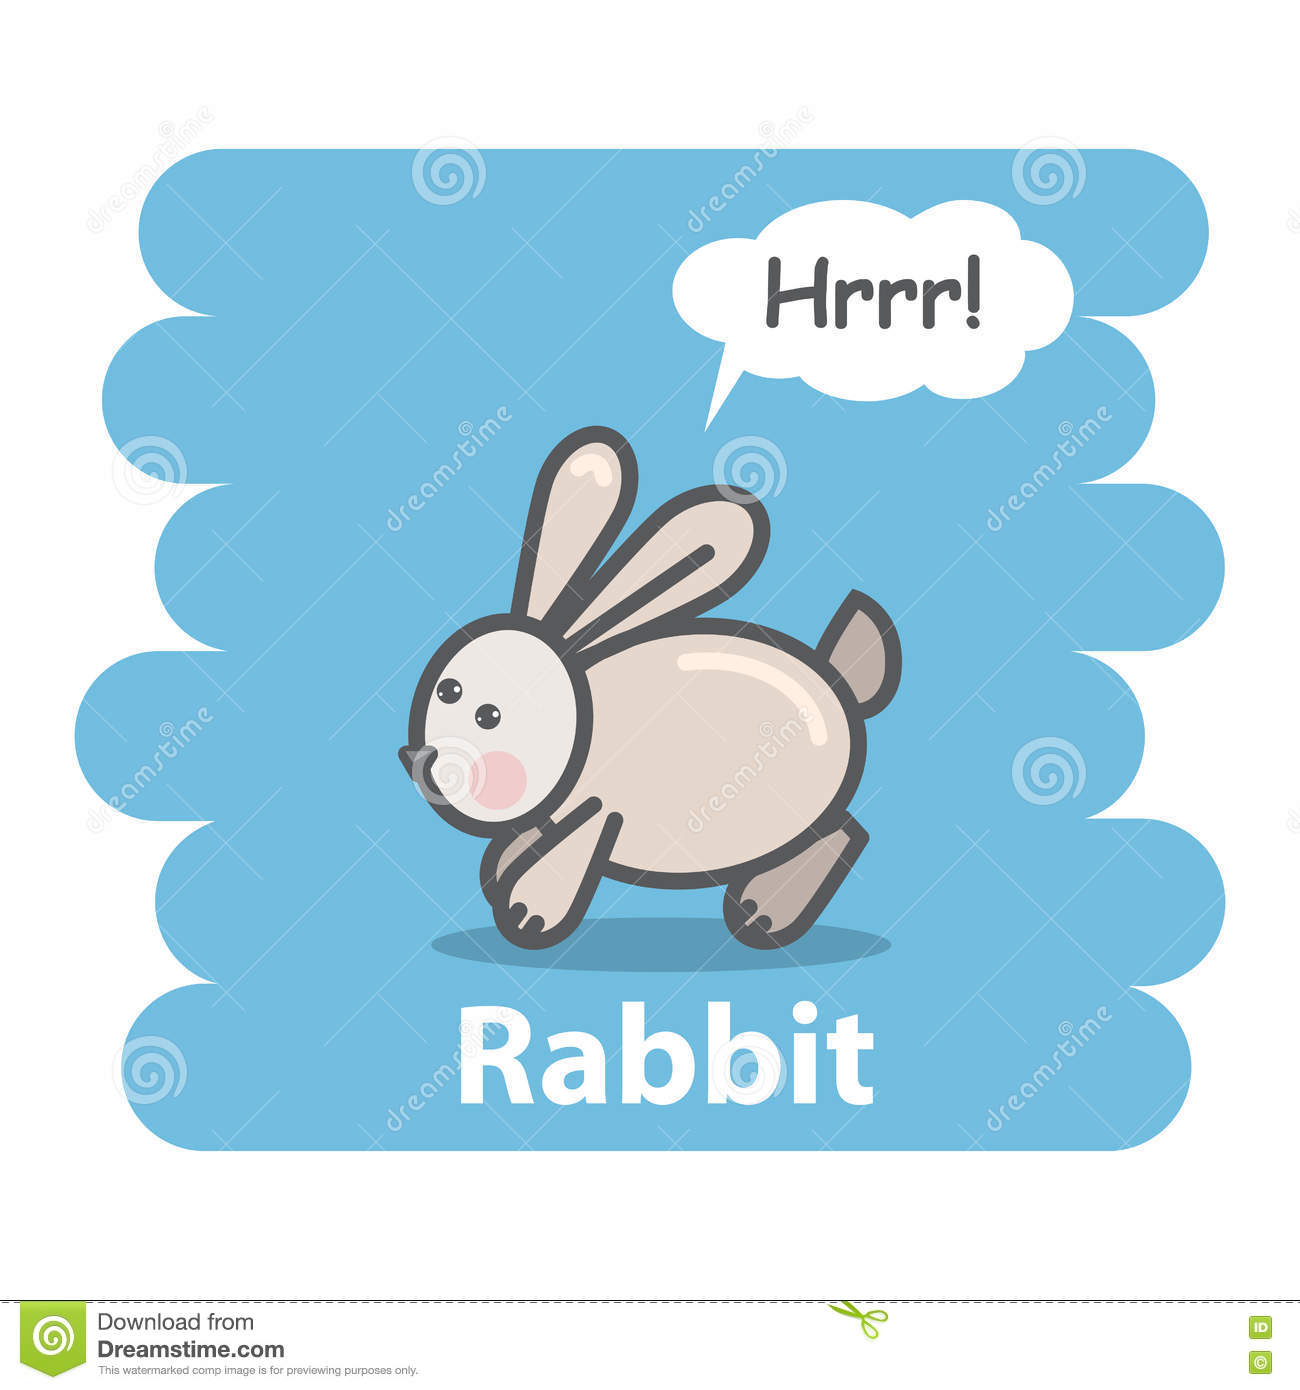 Cute rabbit vector illustration on isolated background.Cartoon rabbit farm animal  speak Hrrr on a speech bubble.From the series what the say animals